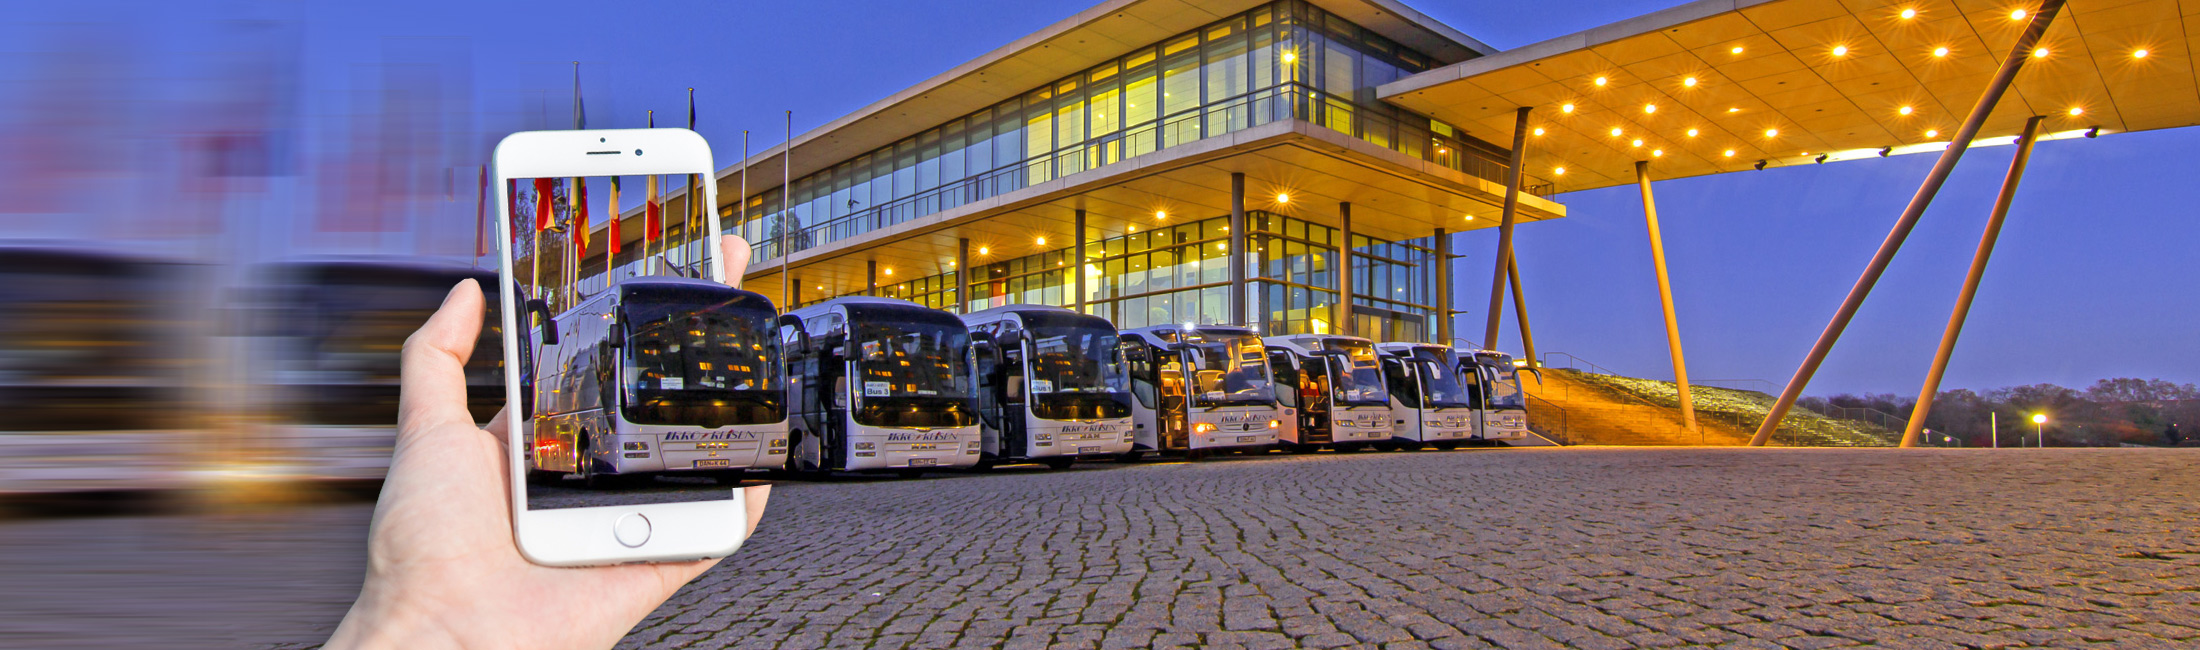 Berlin Bus Service - Explore Germany